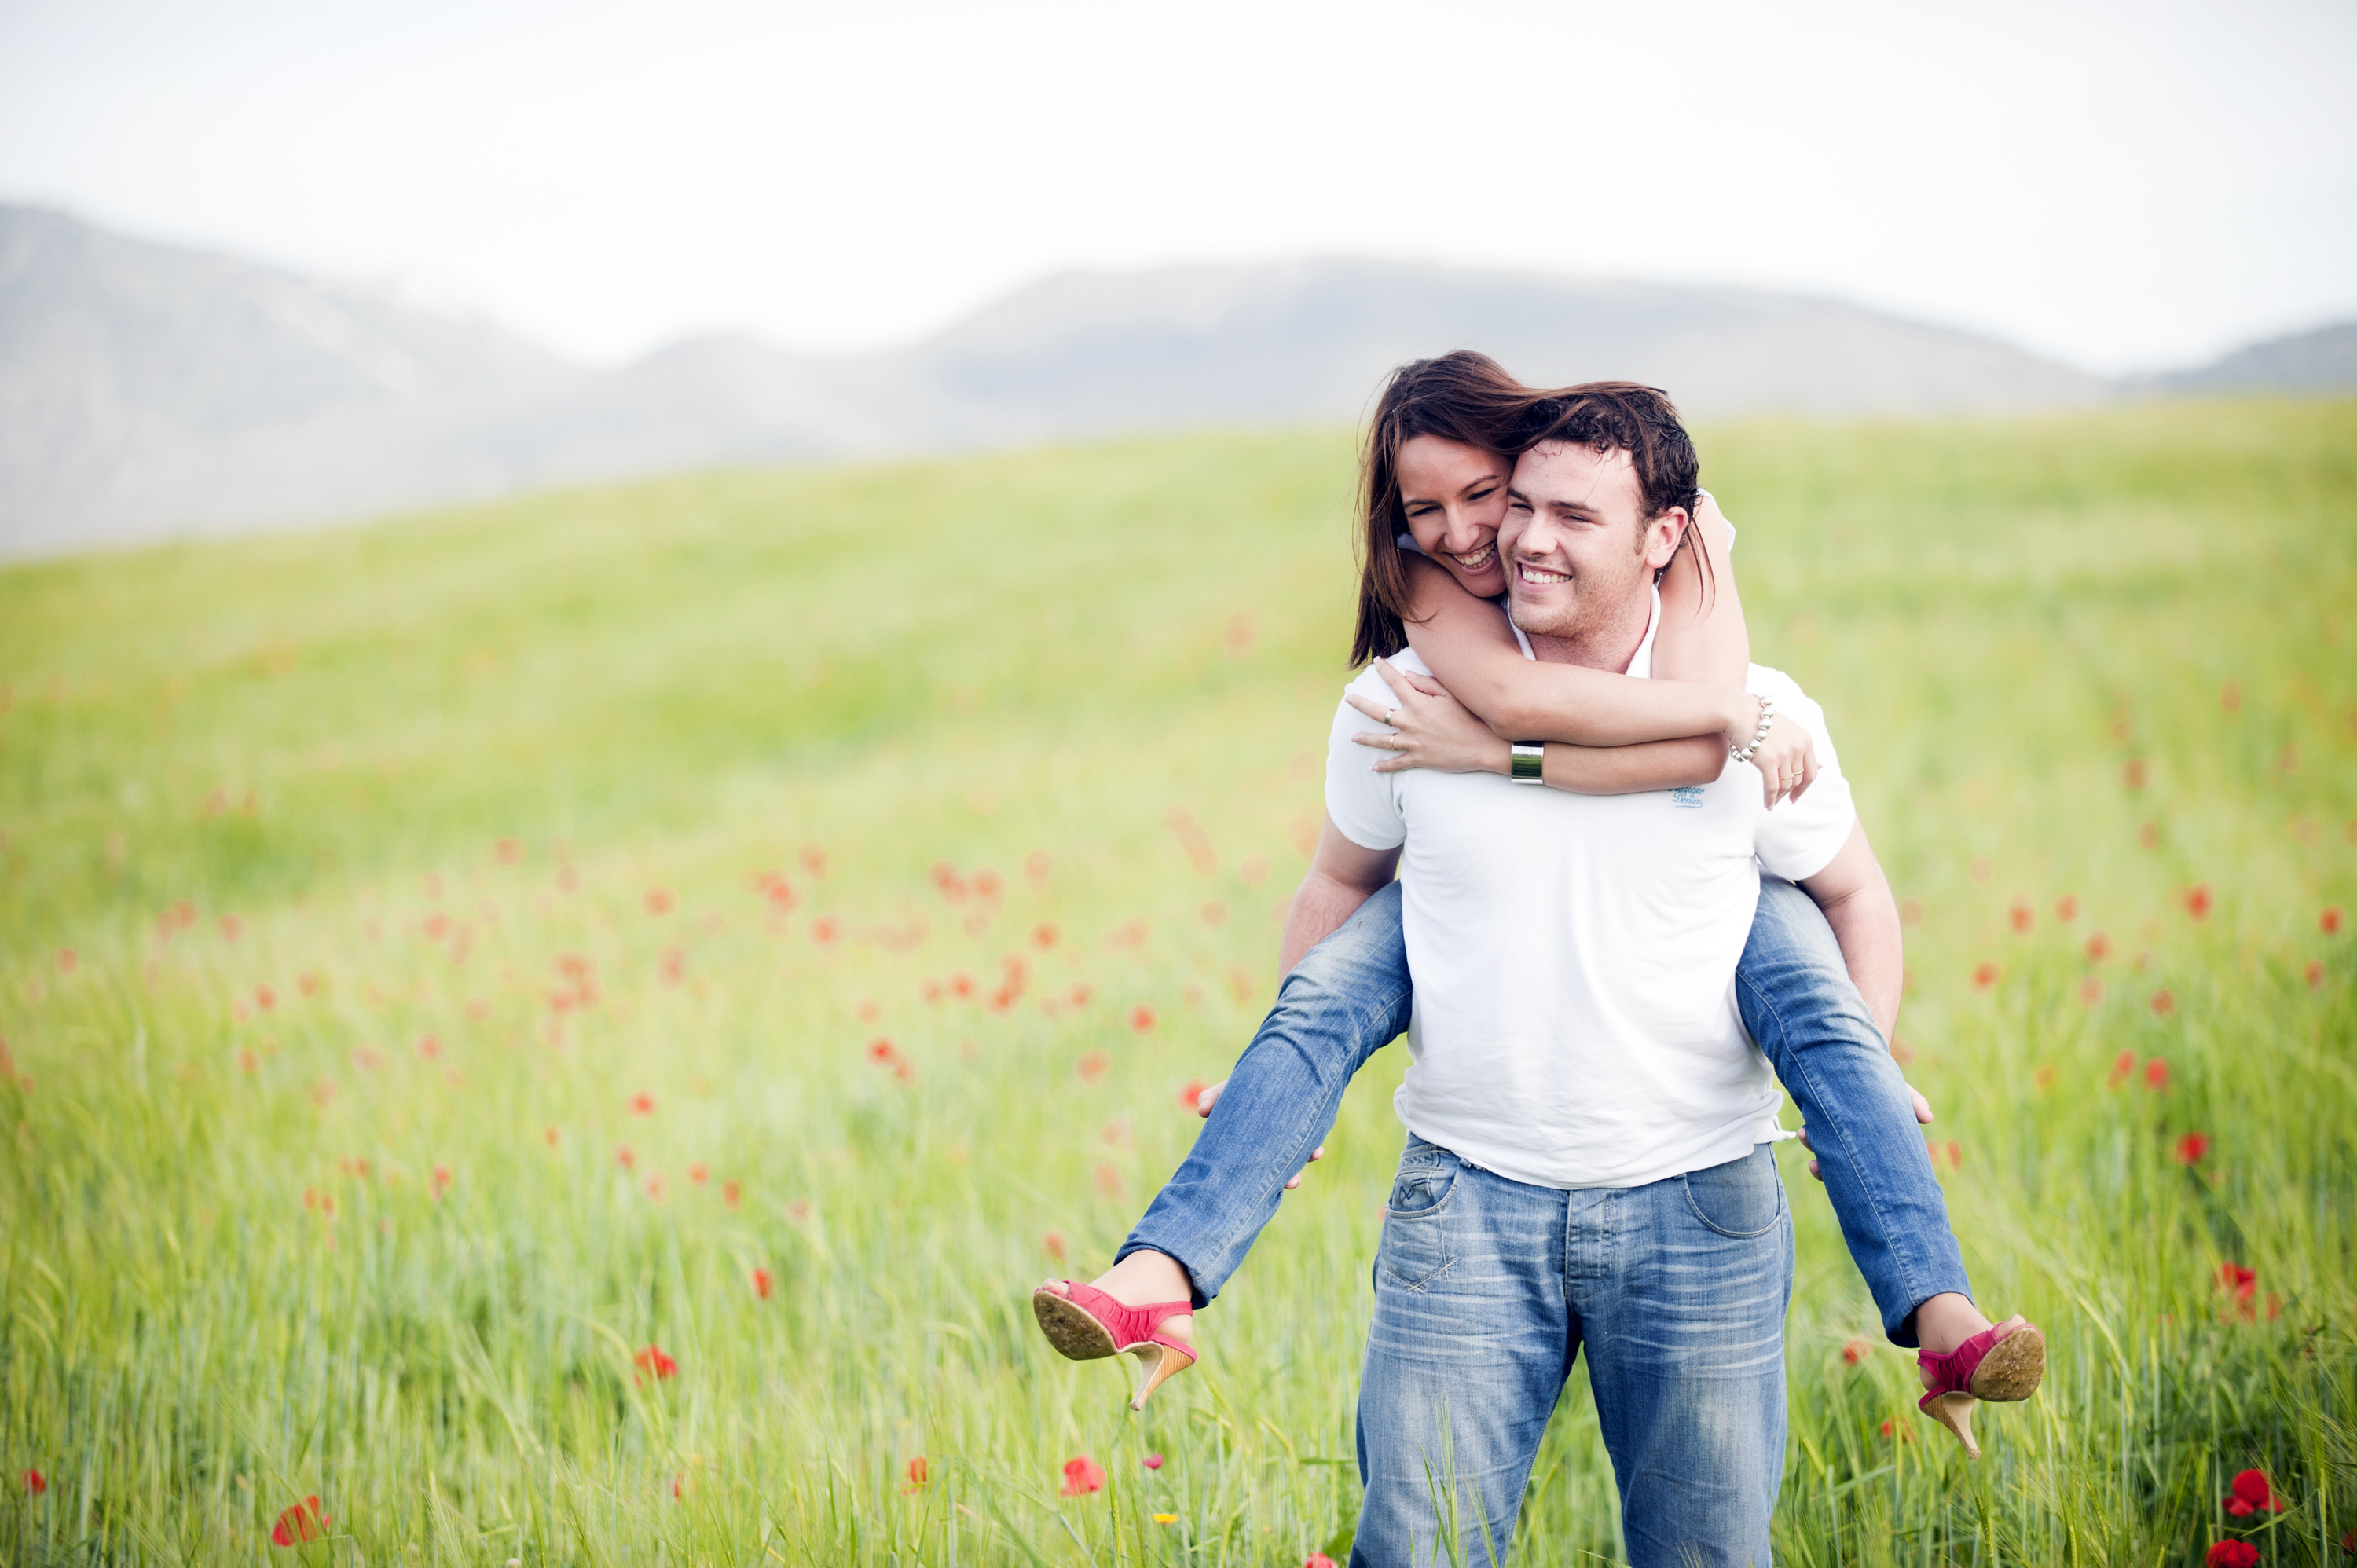 Relationship advice 3 tips for improving communication for Relationship advice for couples